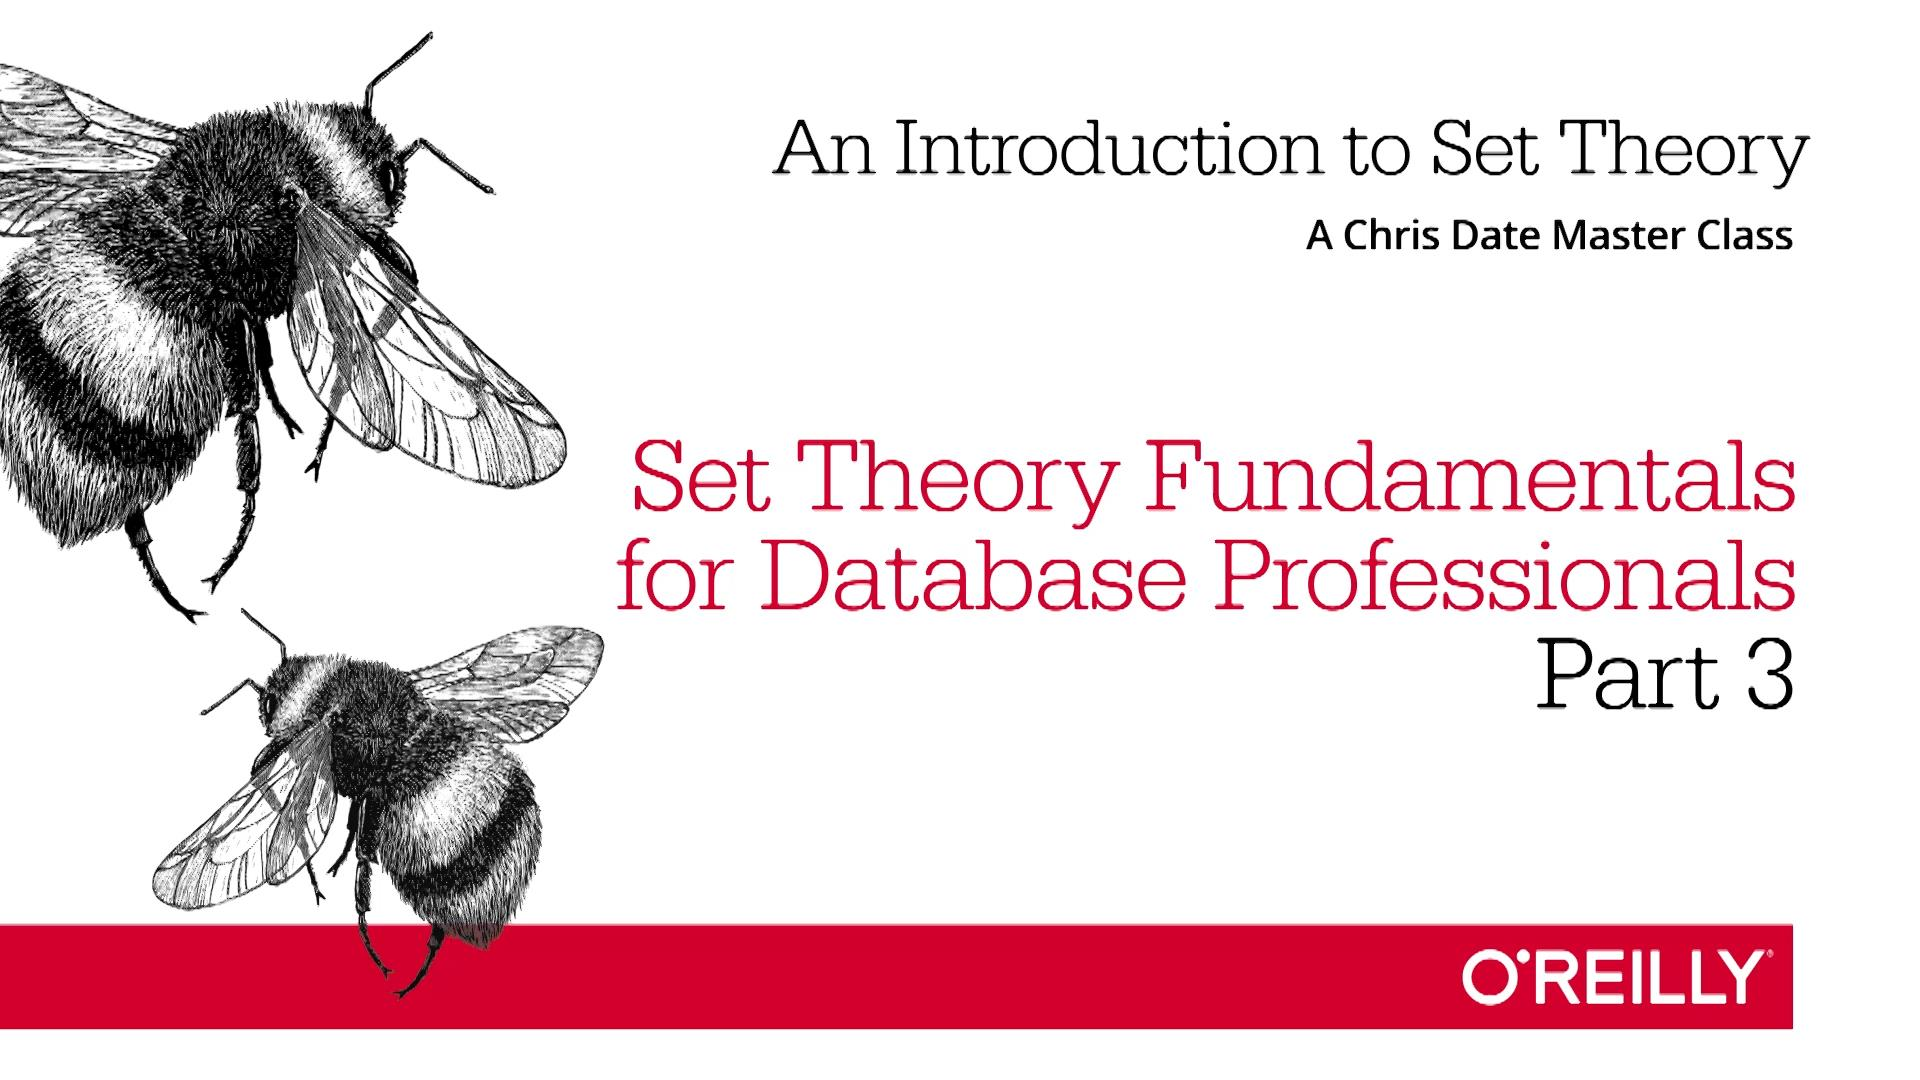 An Introduction to Set Theory: Set Theory Fundamentals for Database Professionals